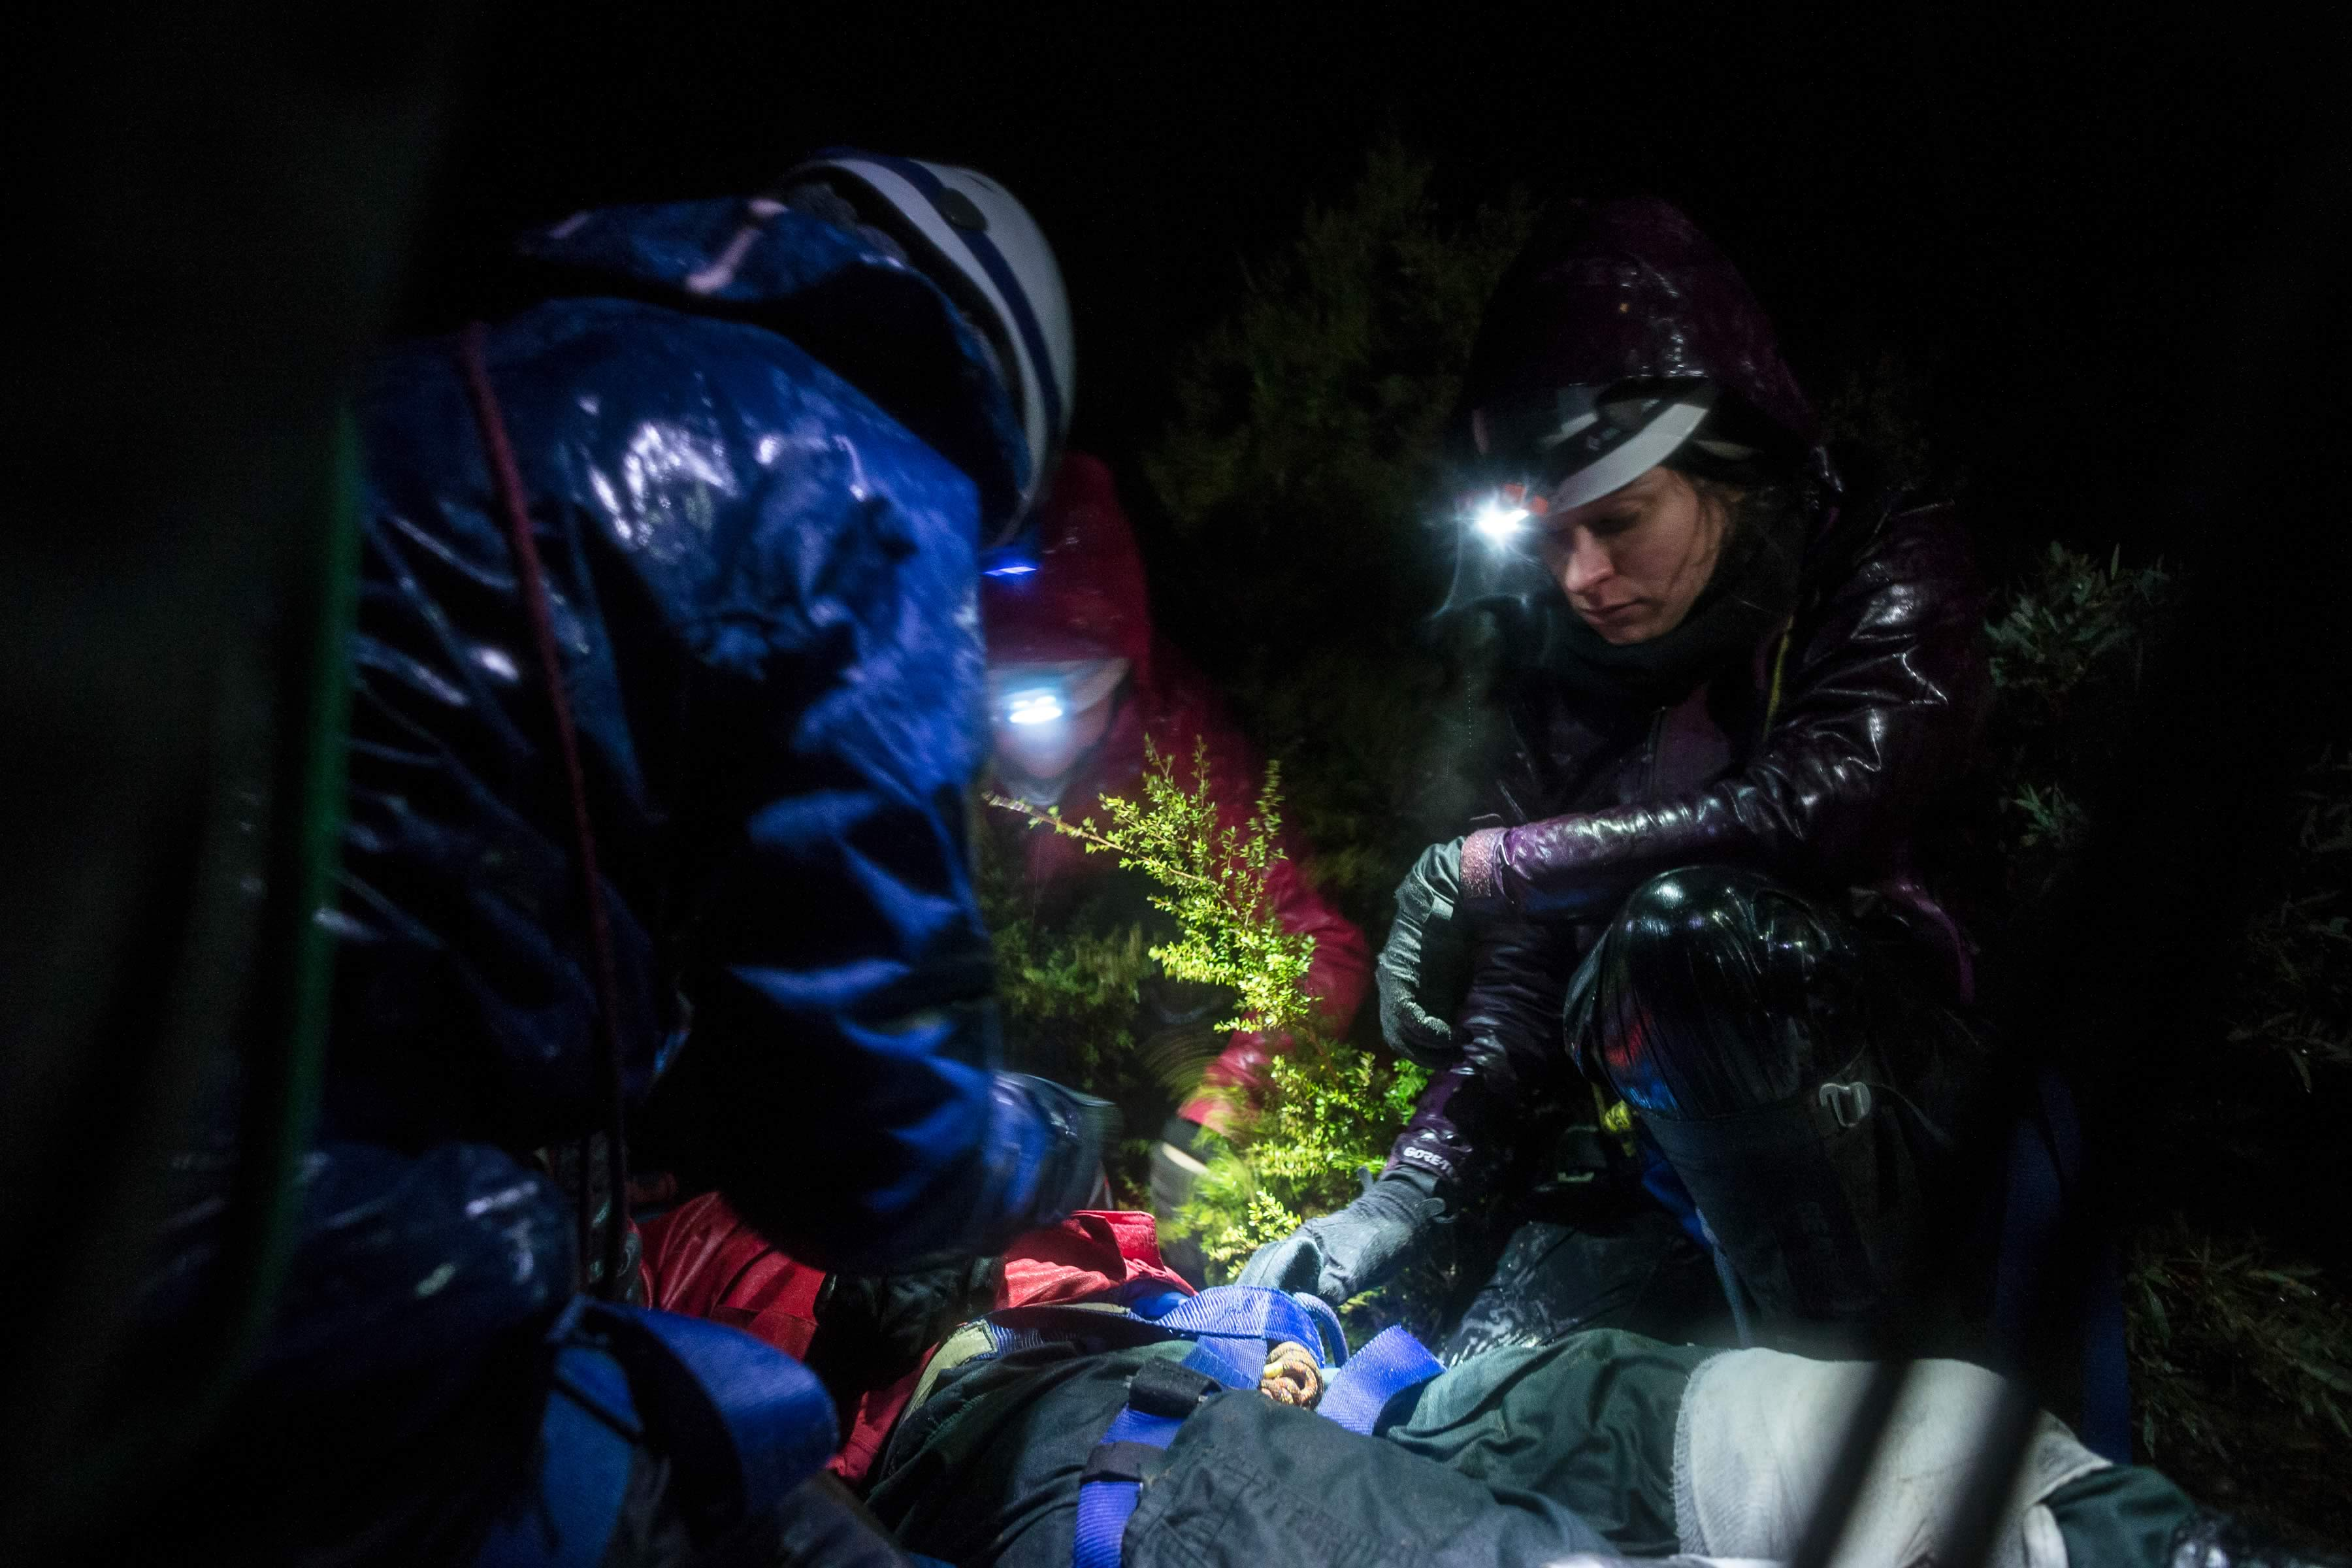 Expeditioners medical training rescue course in night time bushland setting. Photo: Heath Holden.